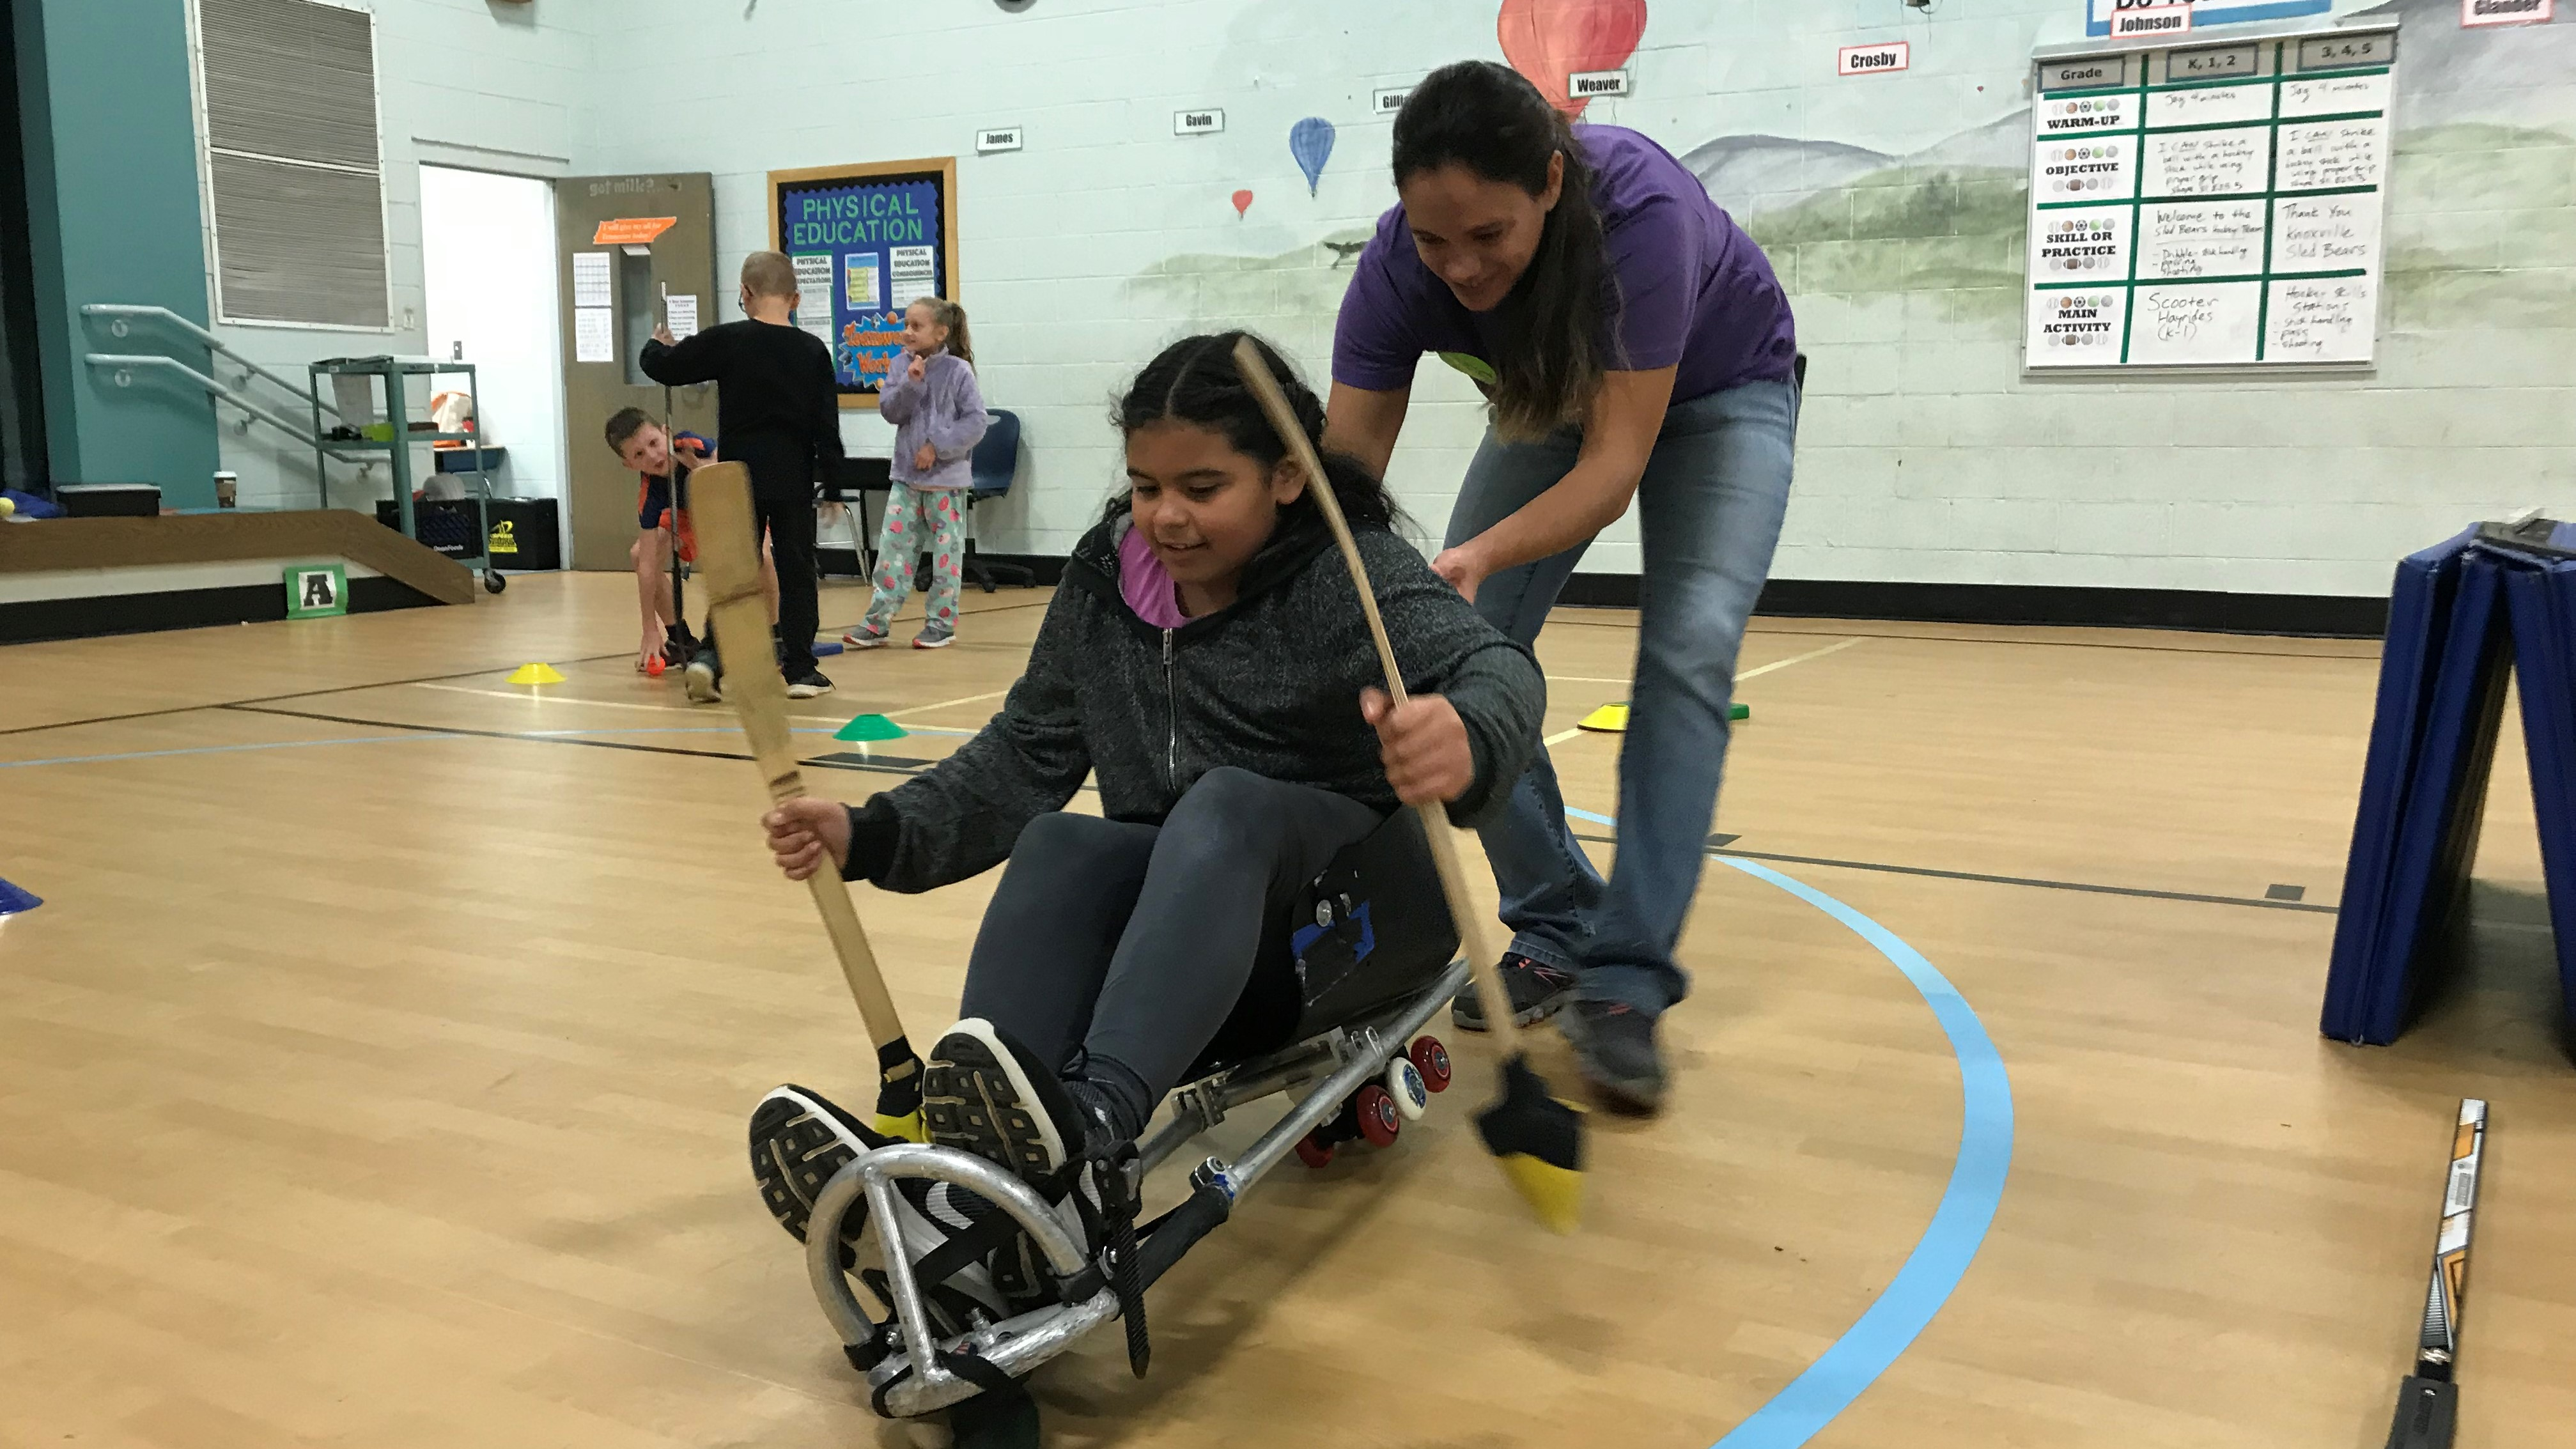 Kristin LeBlanc, director of the Knoxville Sled Bears, helps a Ritta Elementary student maneuver on a modified hockey sled.